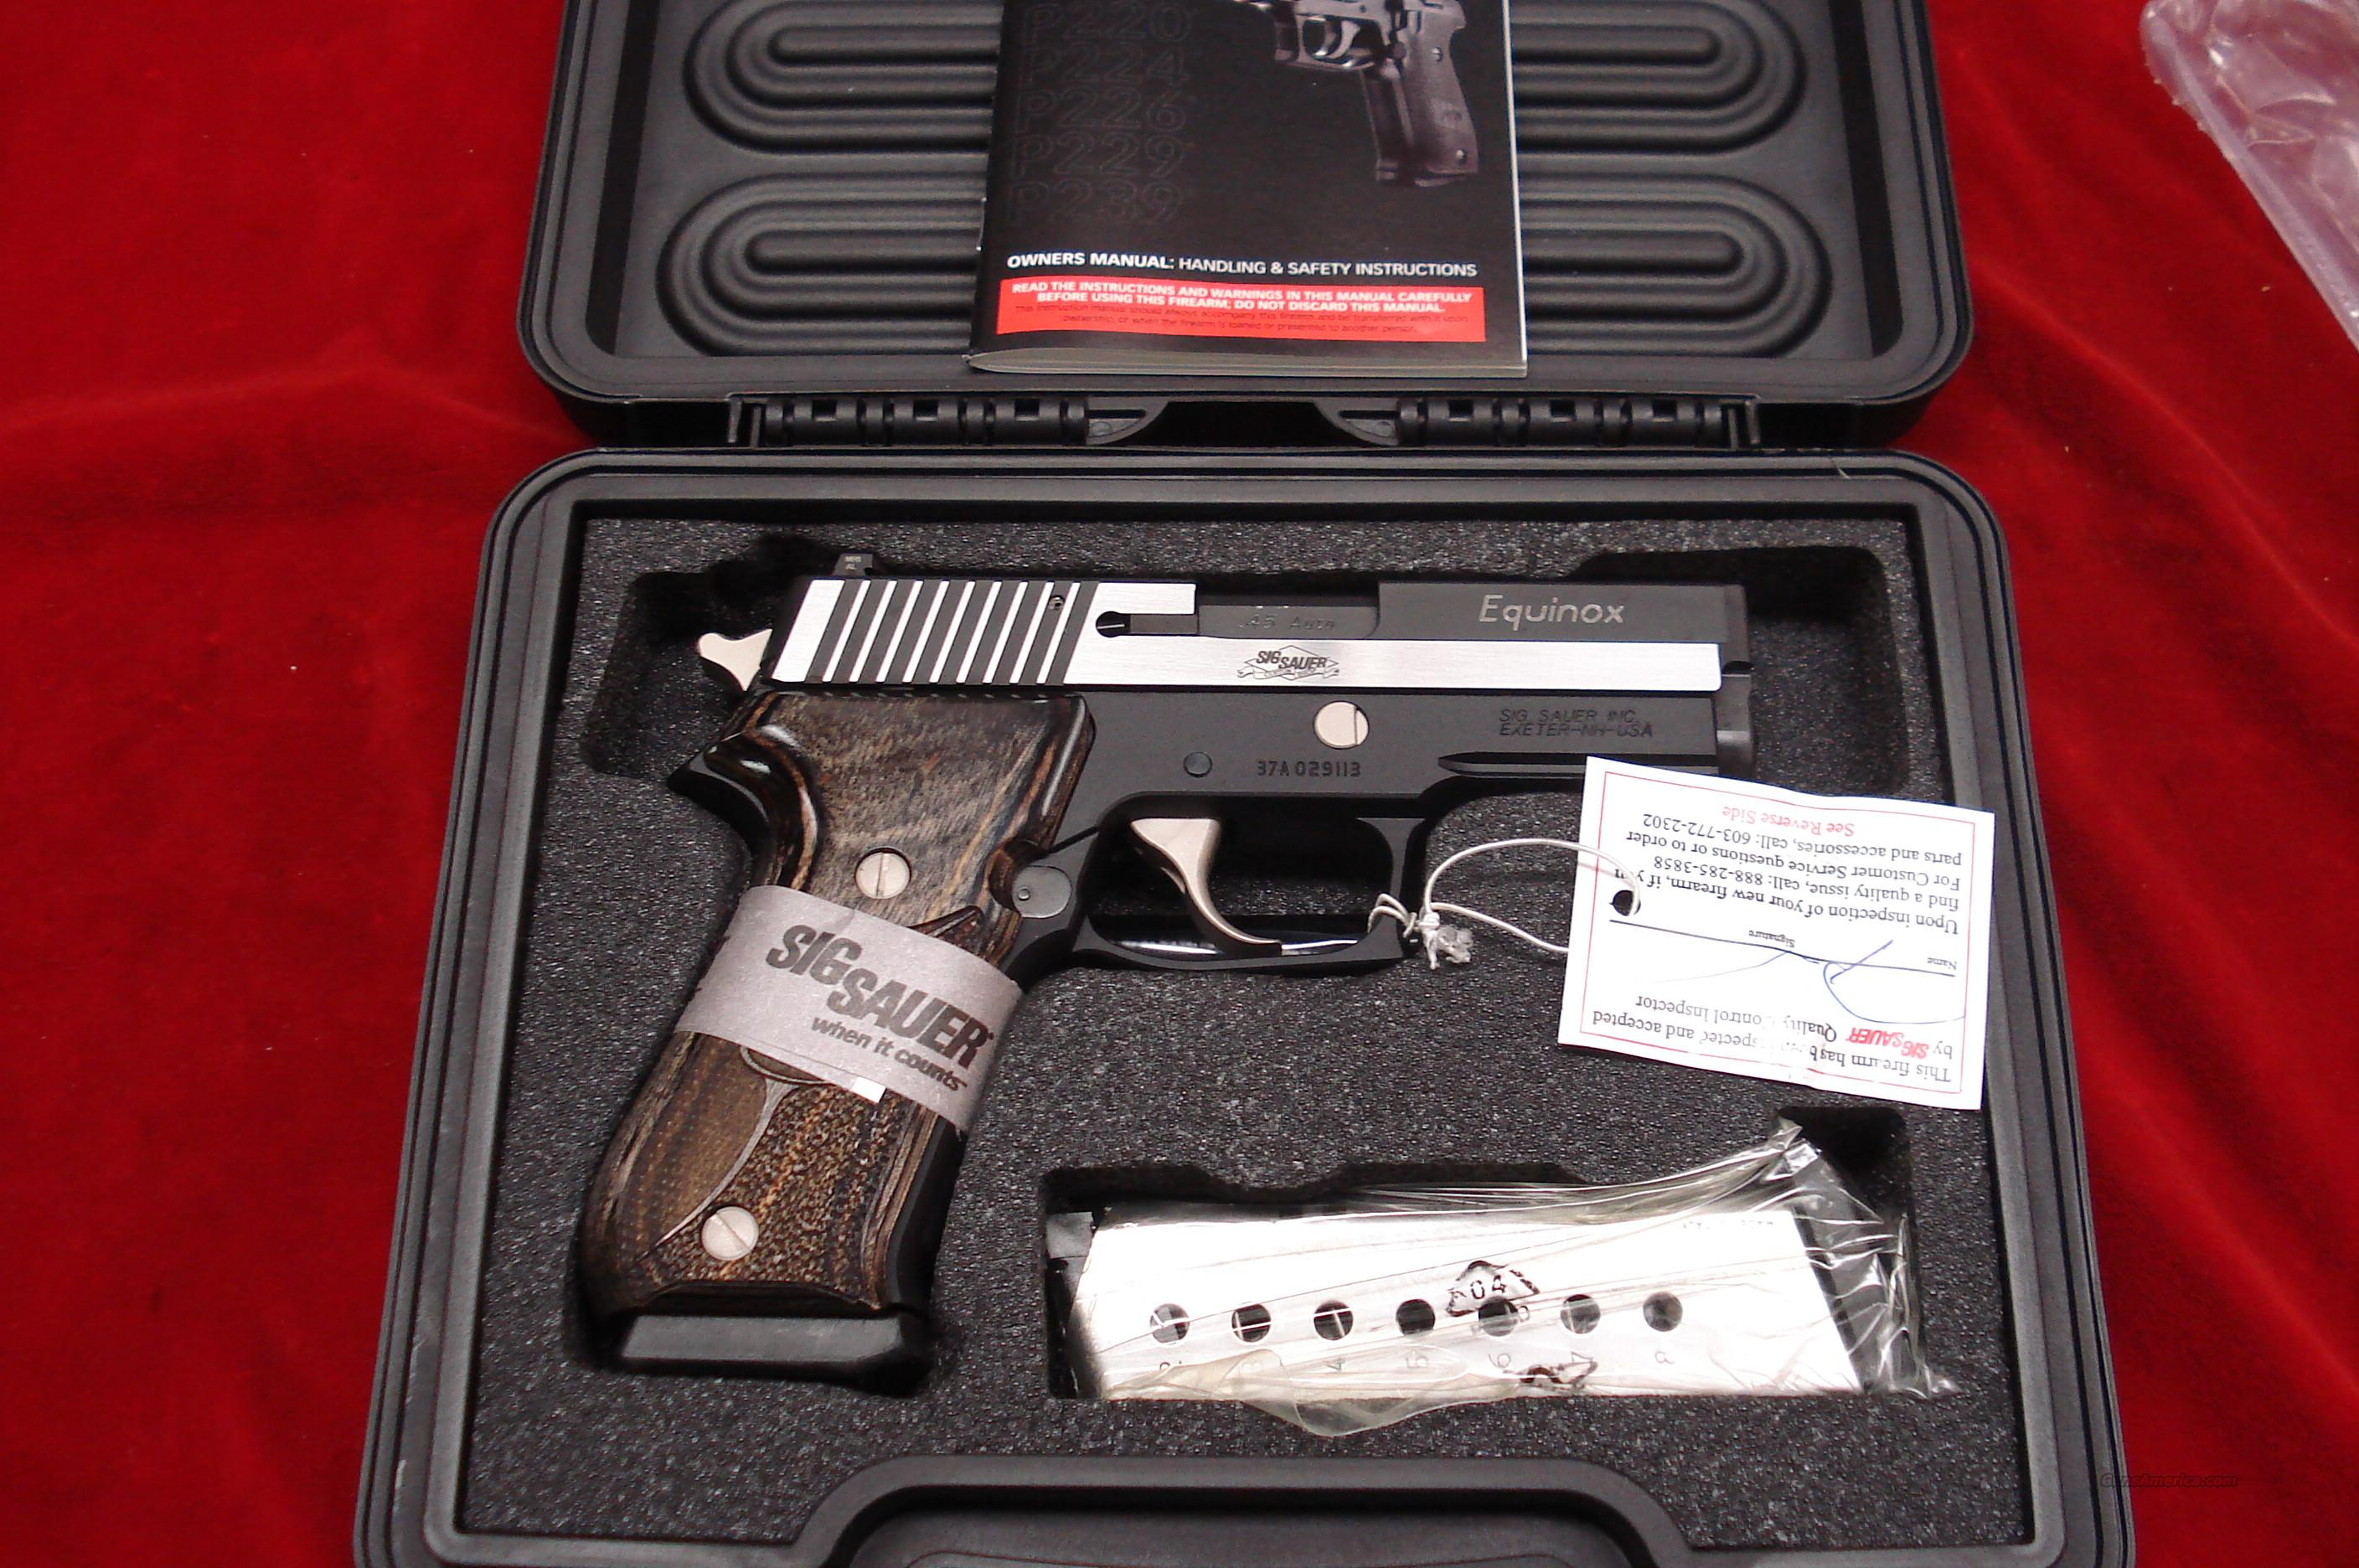 SIG SAUER P220 EQUINOX CARRY 45CAL STAINLESS TWO TONE WITH NIGHT SIGHTS NEW   Guns > Pistols > Sig - Sauer/Sigarms Pistols > P220